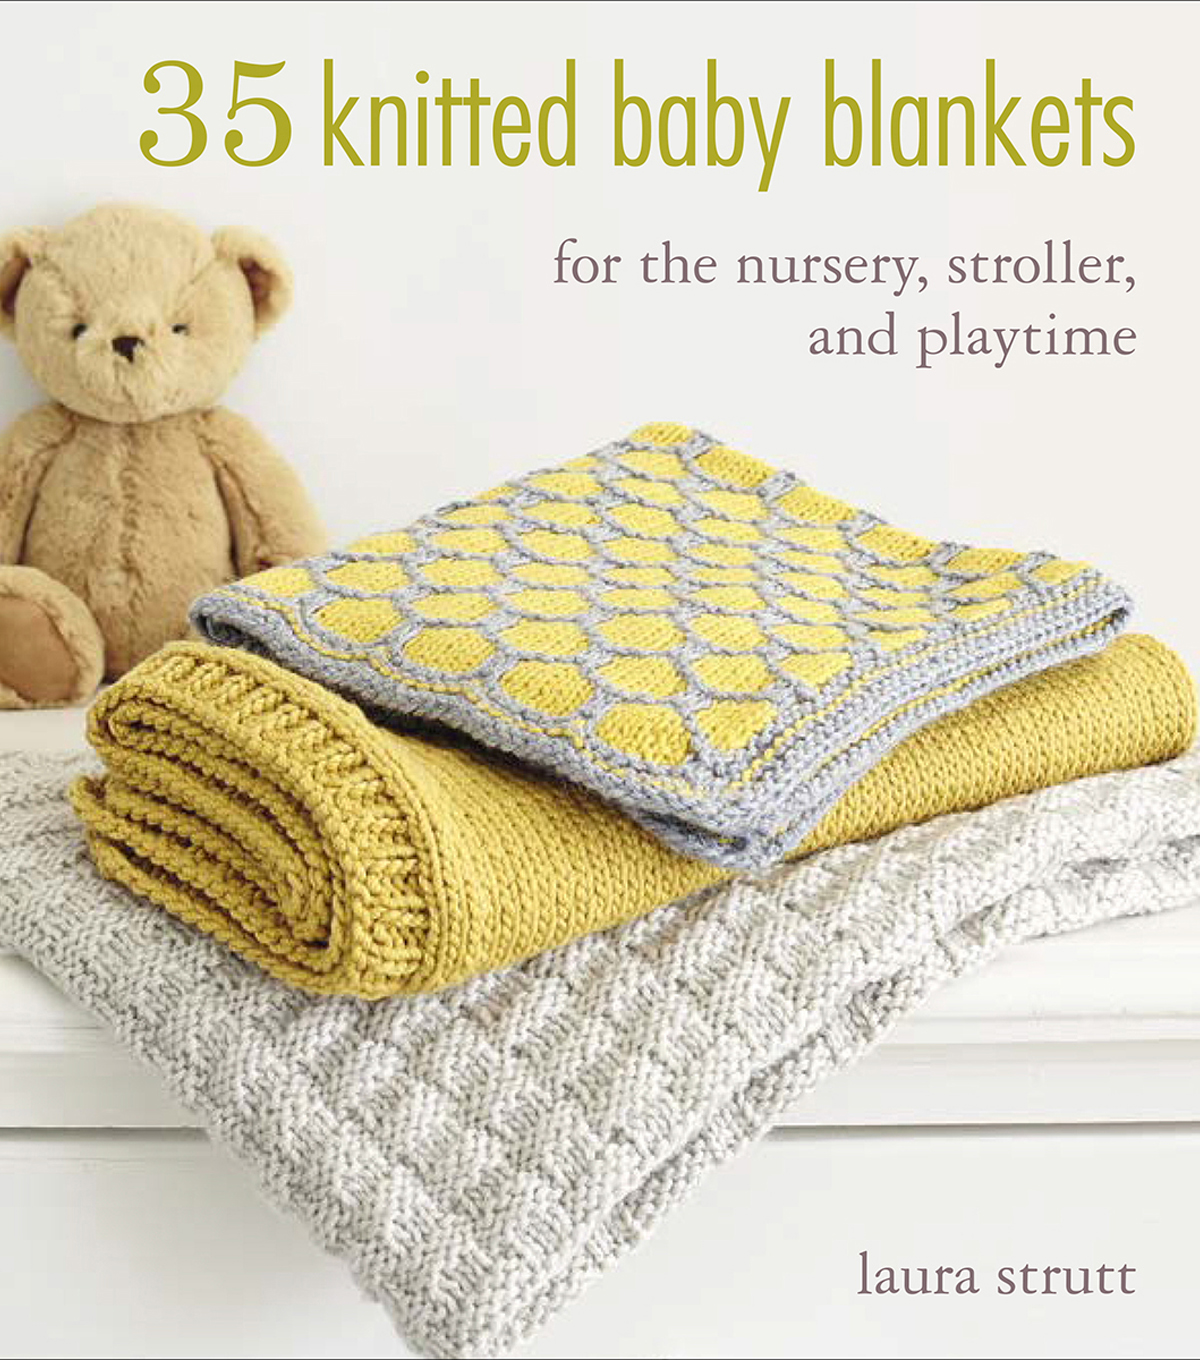 35 Knitted Baby Blankets Book